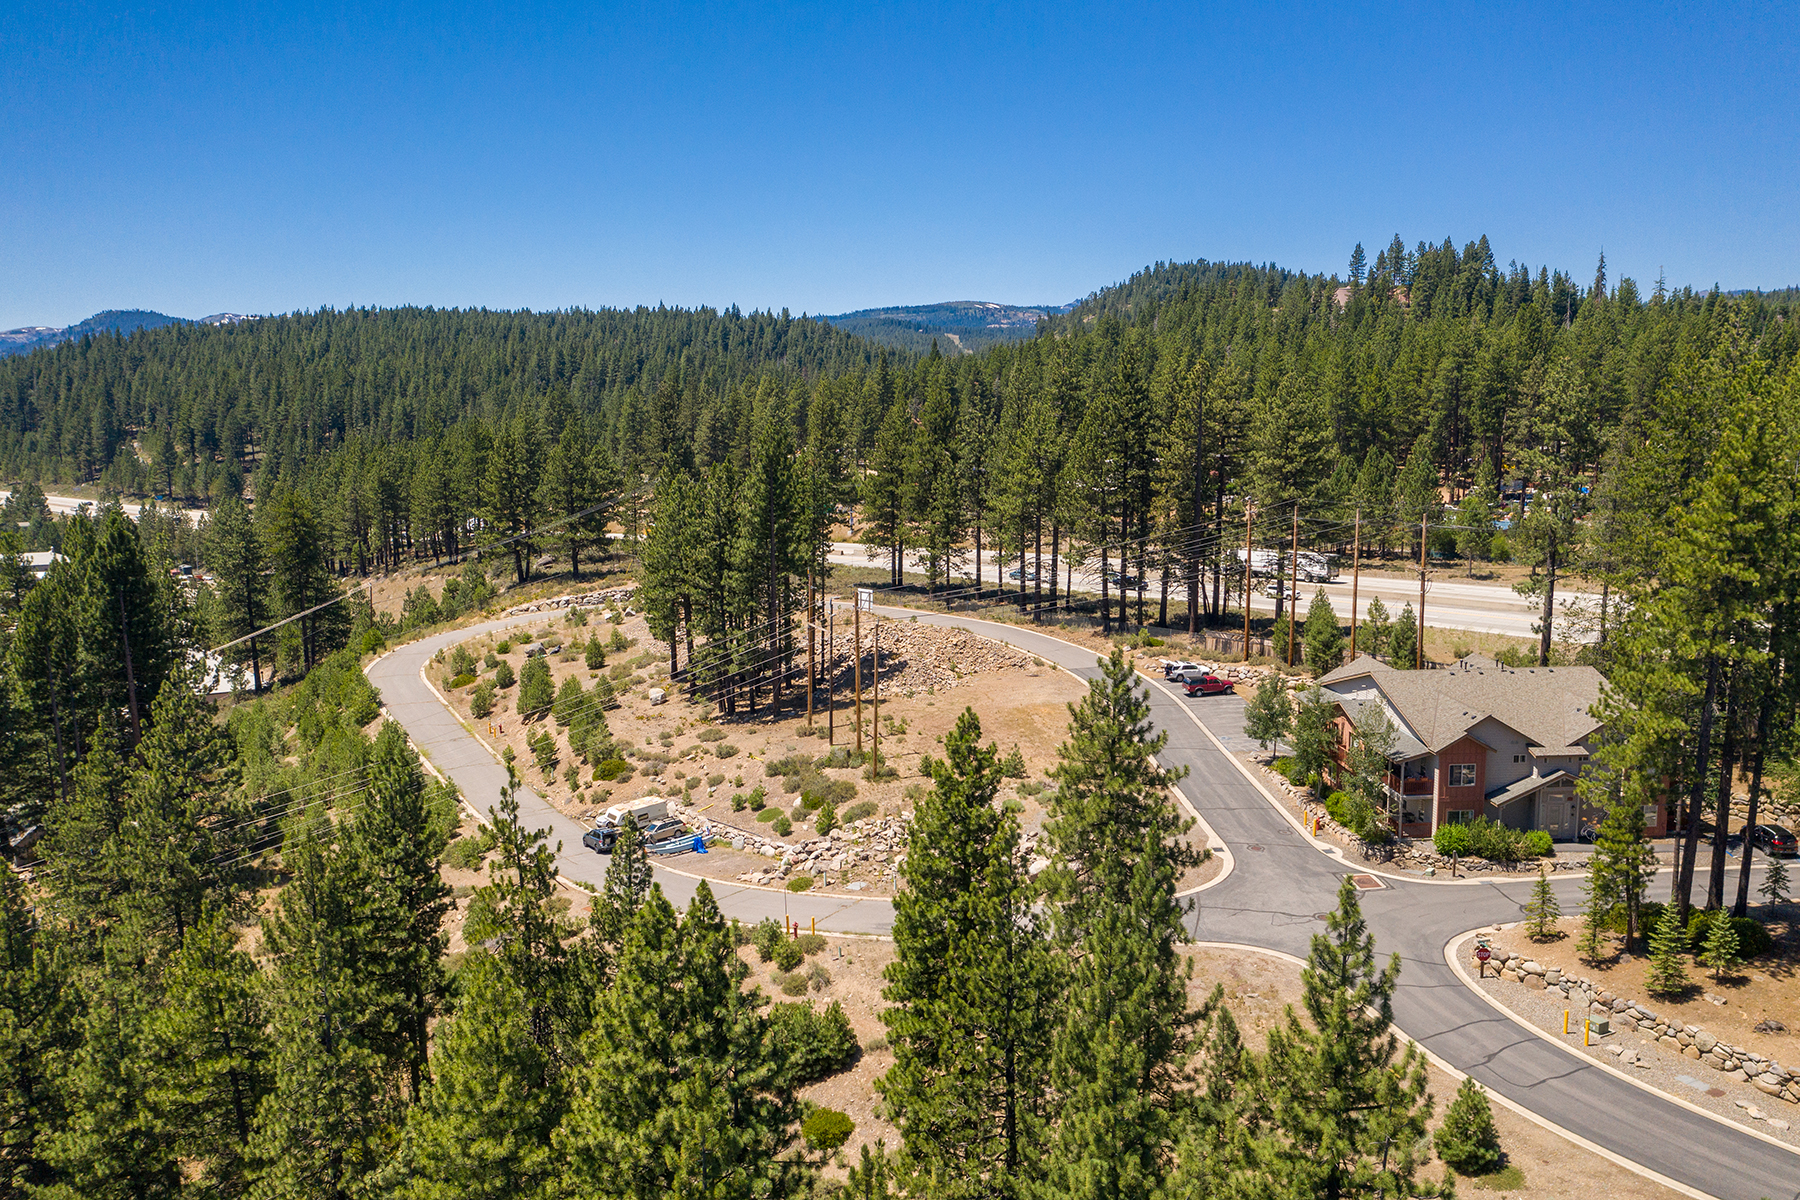 Additional photo for property listing at Wonderful Business Opportunity 10153-10318 Stoneridge Dr. Truckee, California 96161 Estados Unidos